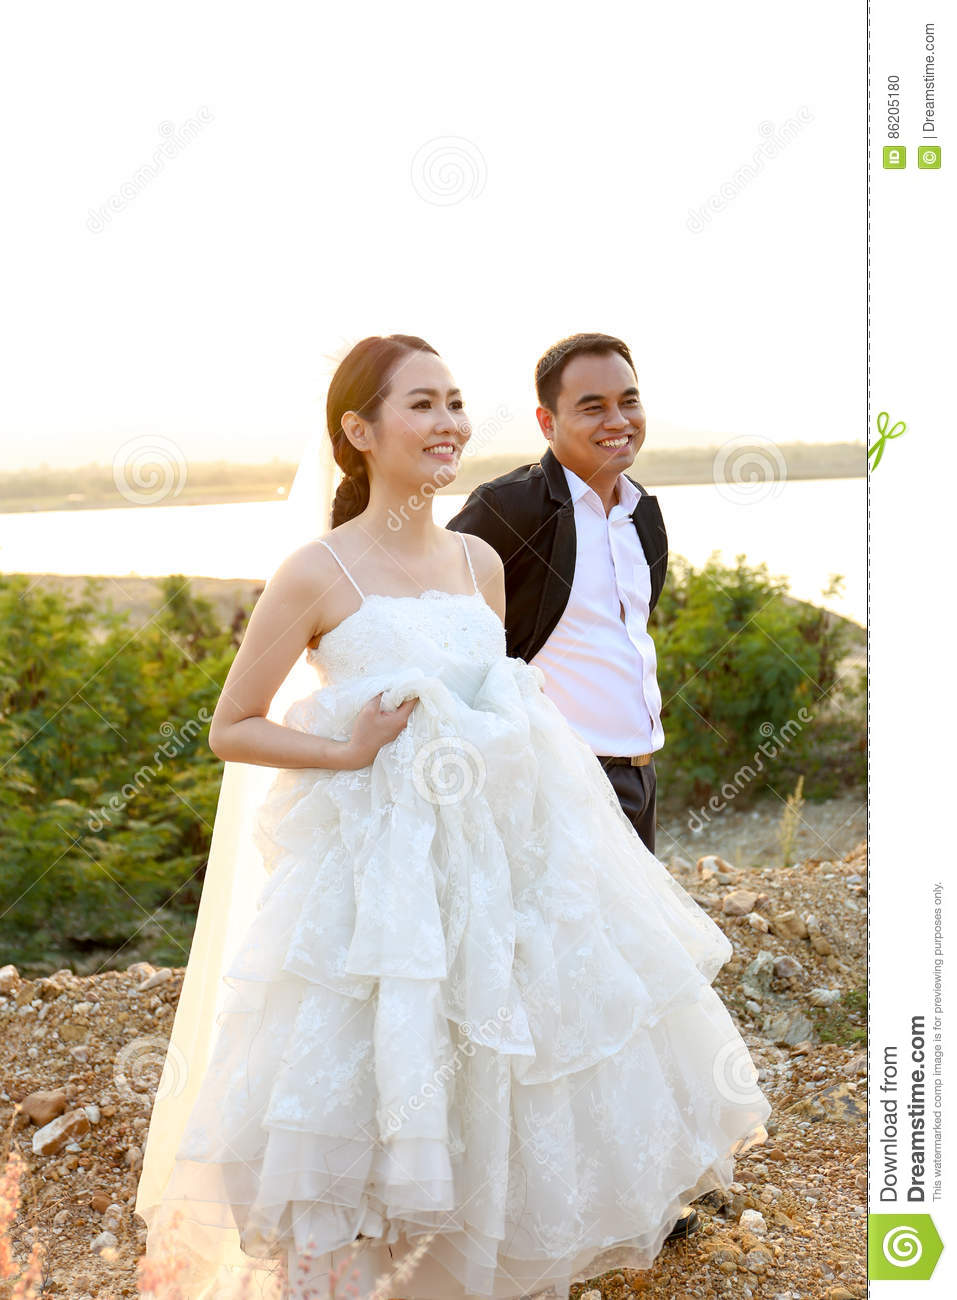 Asian Bride And Groom In Wedding Dresses Against The Sunset Scene ...